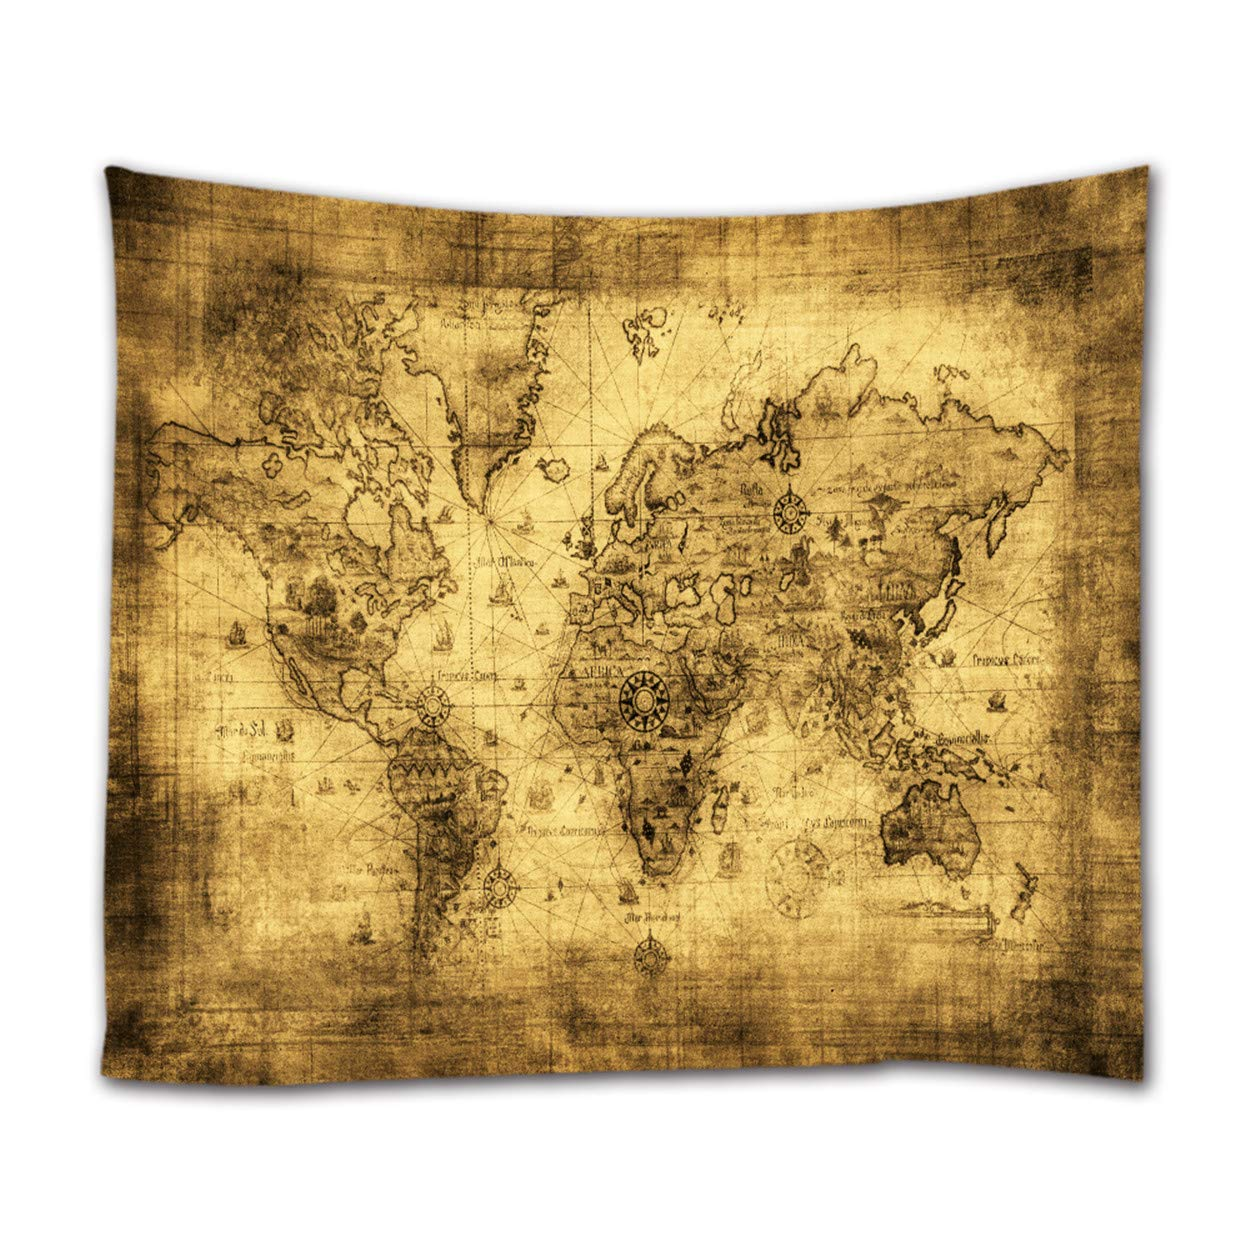 Amazon.com: Ihome888 World Map Tapestry Wall Hanging, Light Weight ...